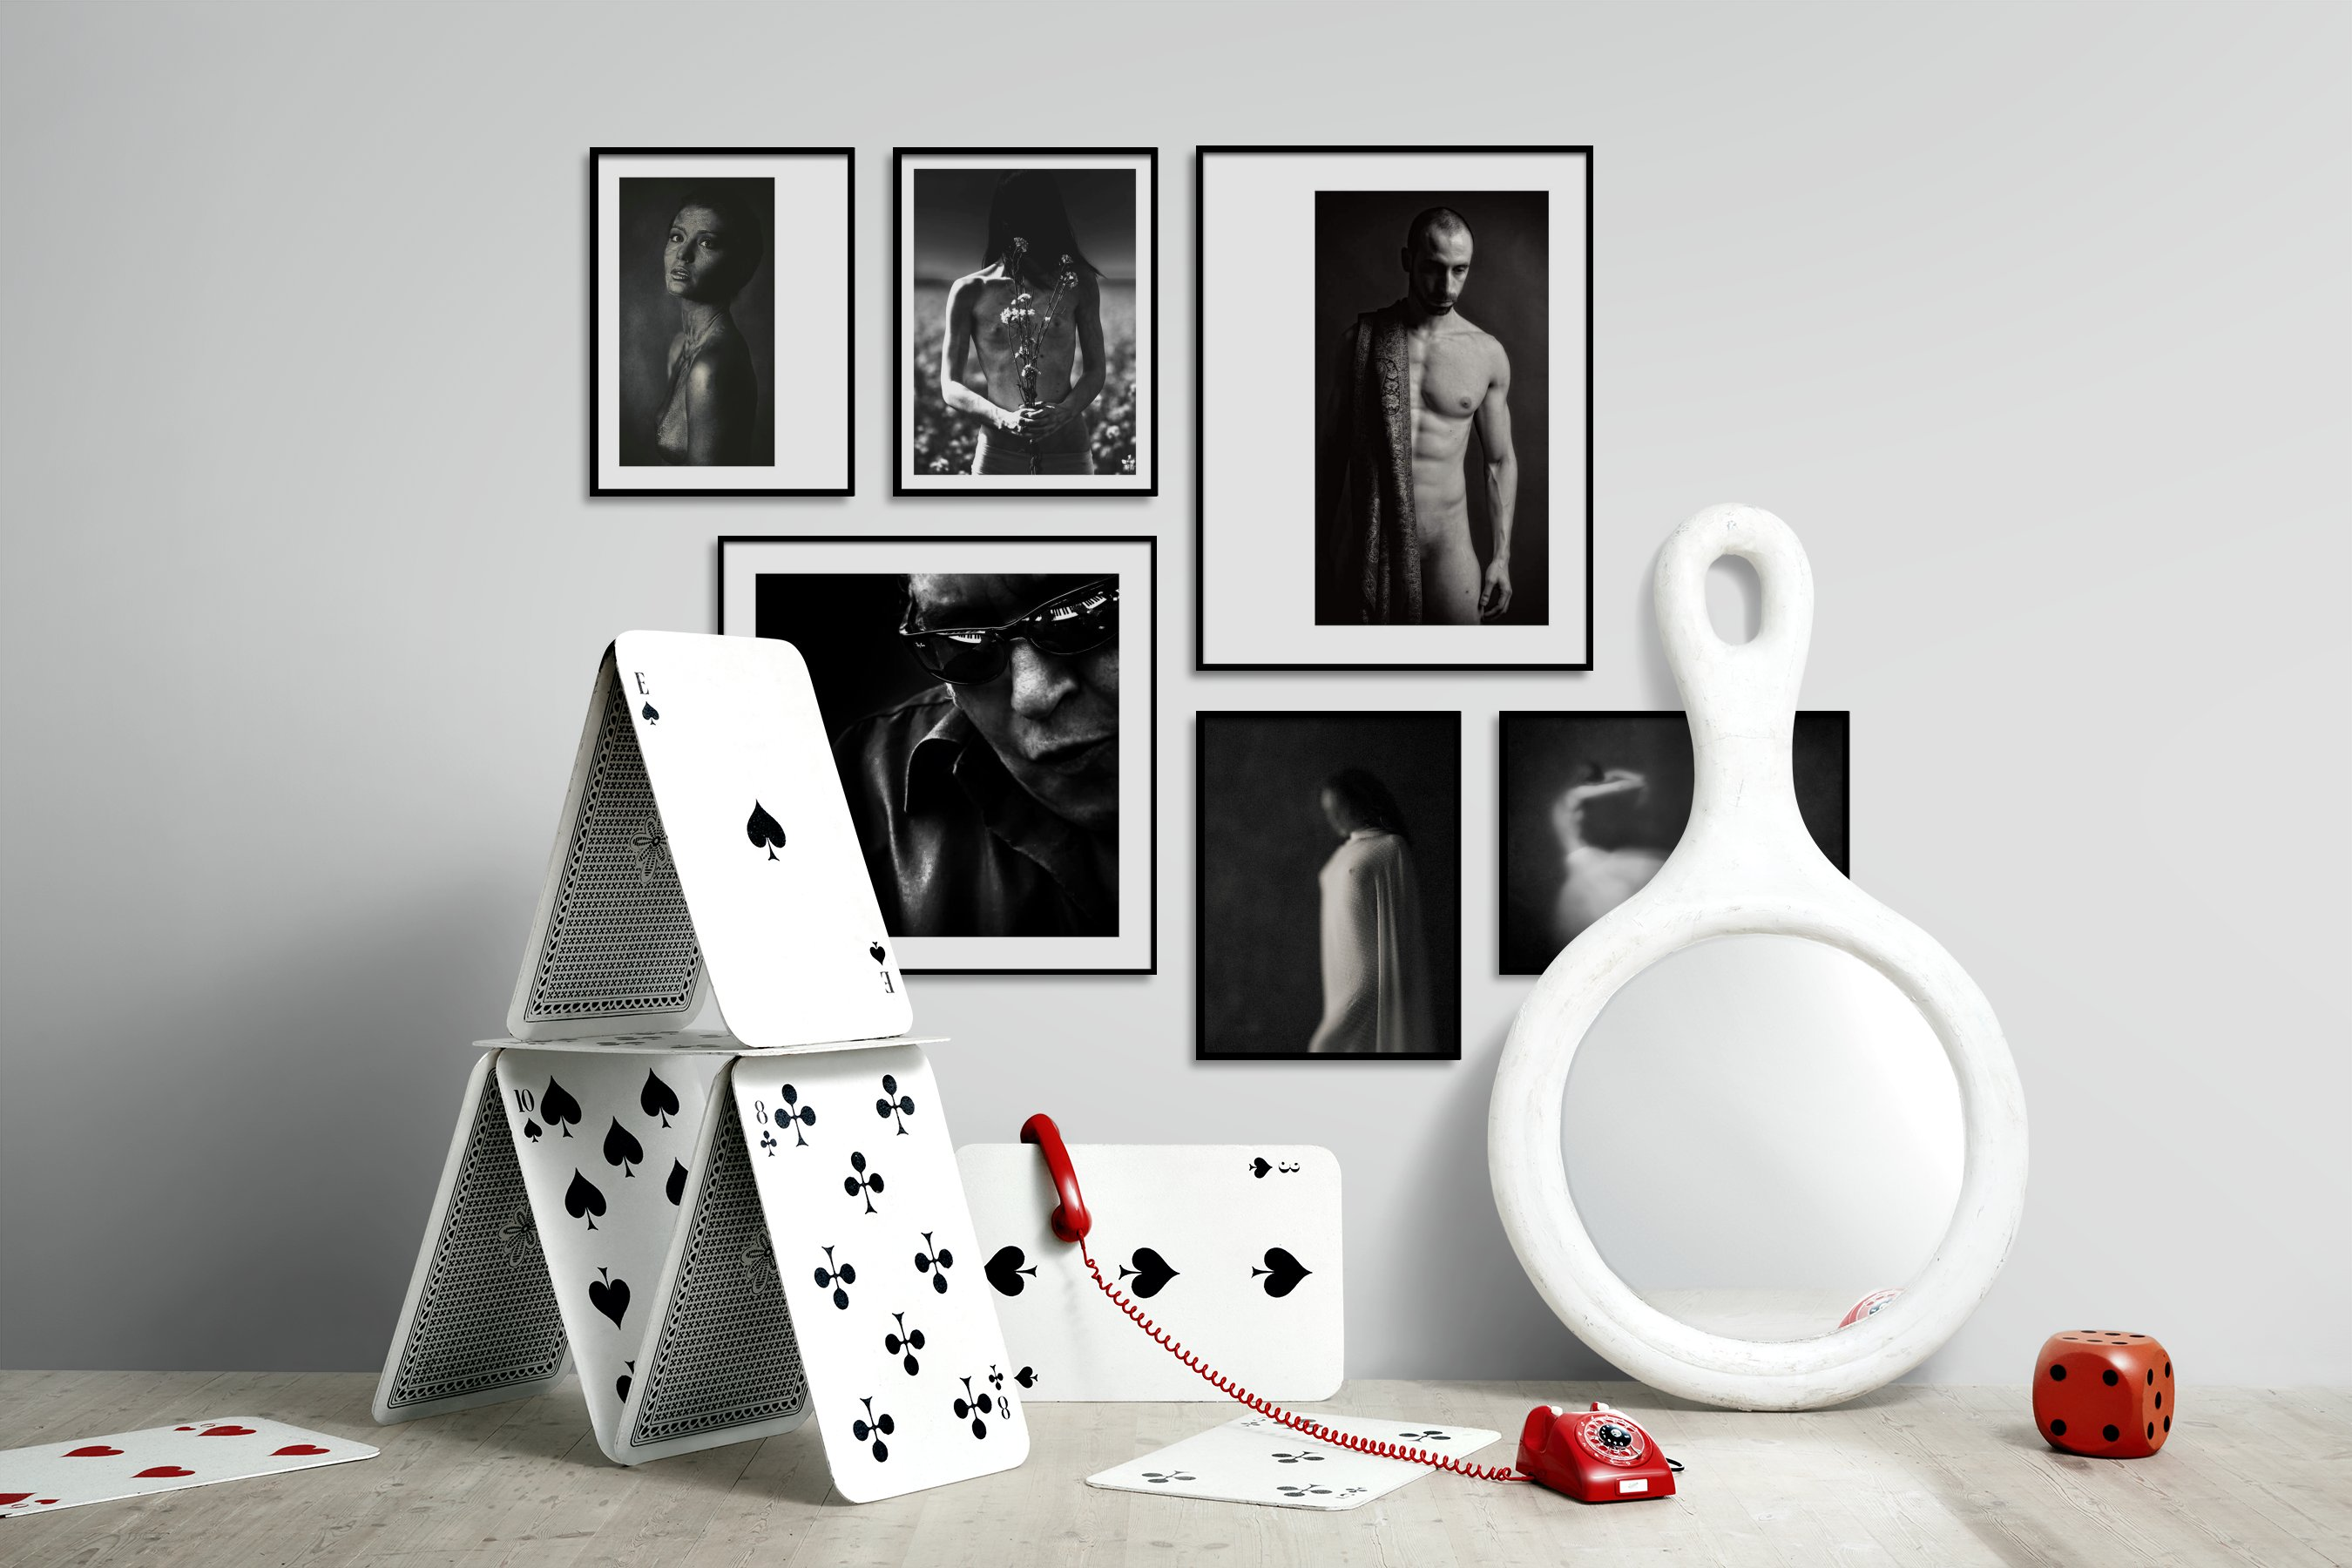 Gallery wall idea with six framed pictures arranged on a wall depicting Fashion & Beauty, Black & White, Bold, Artsy, and For the Moderate